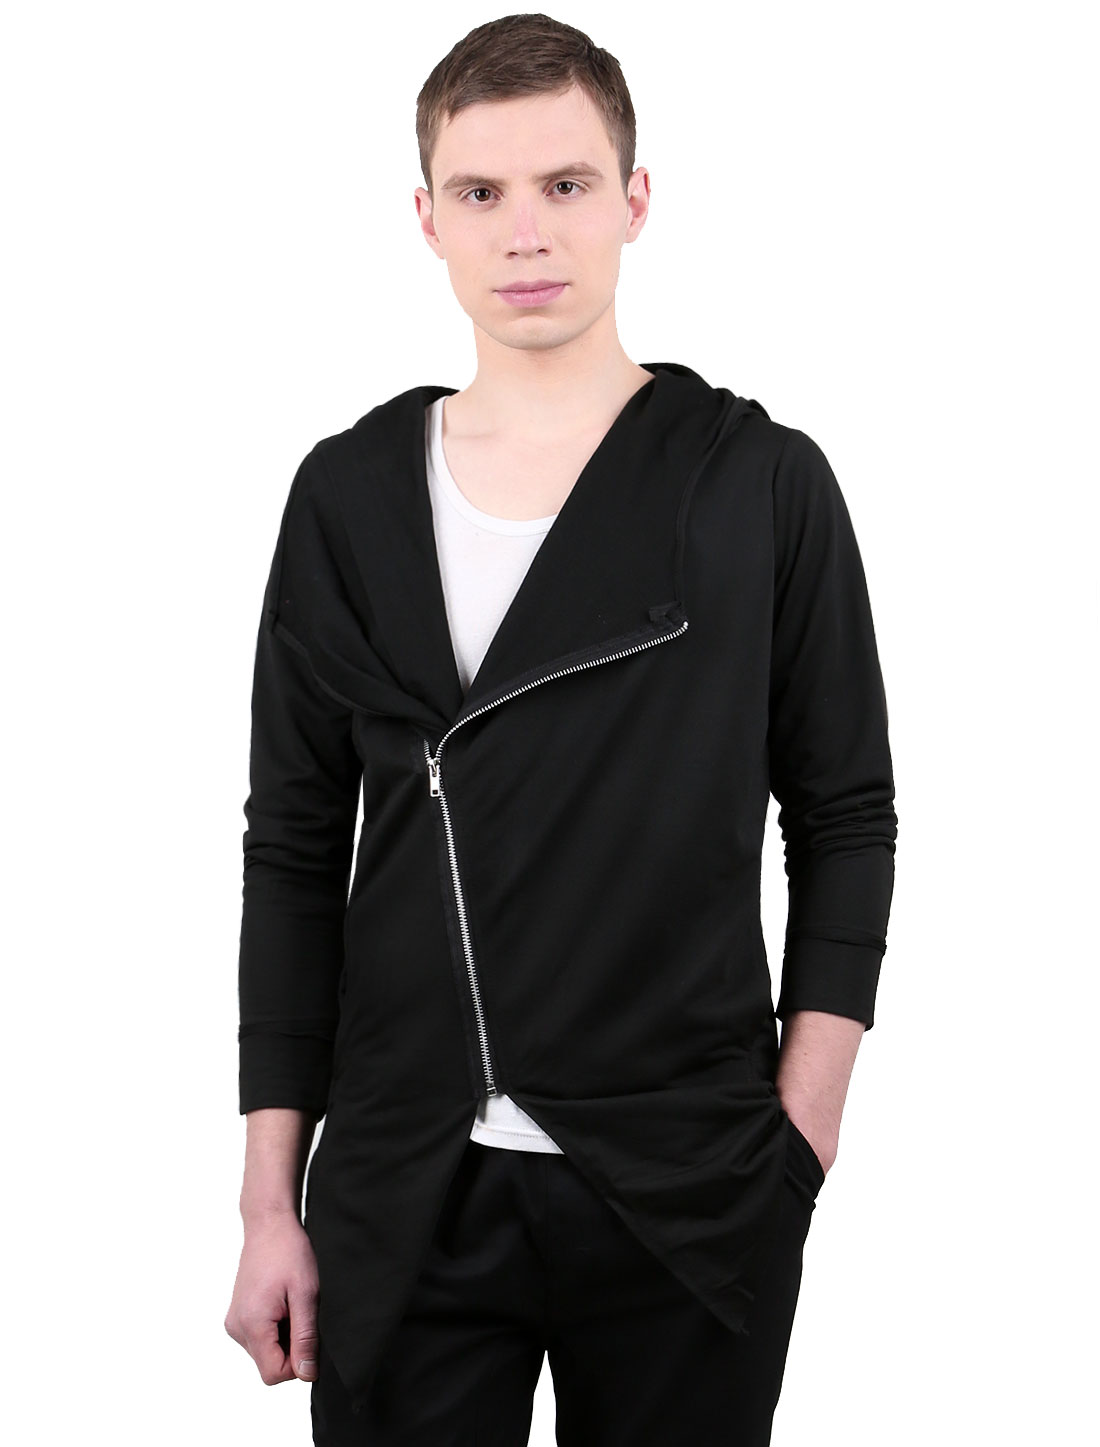 Men Inclined Zip Closed Long Sleeves Casual Hooded Cardigan Black S